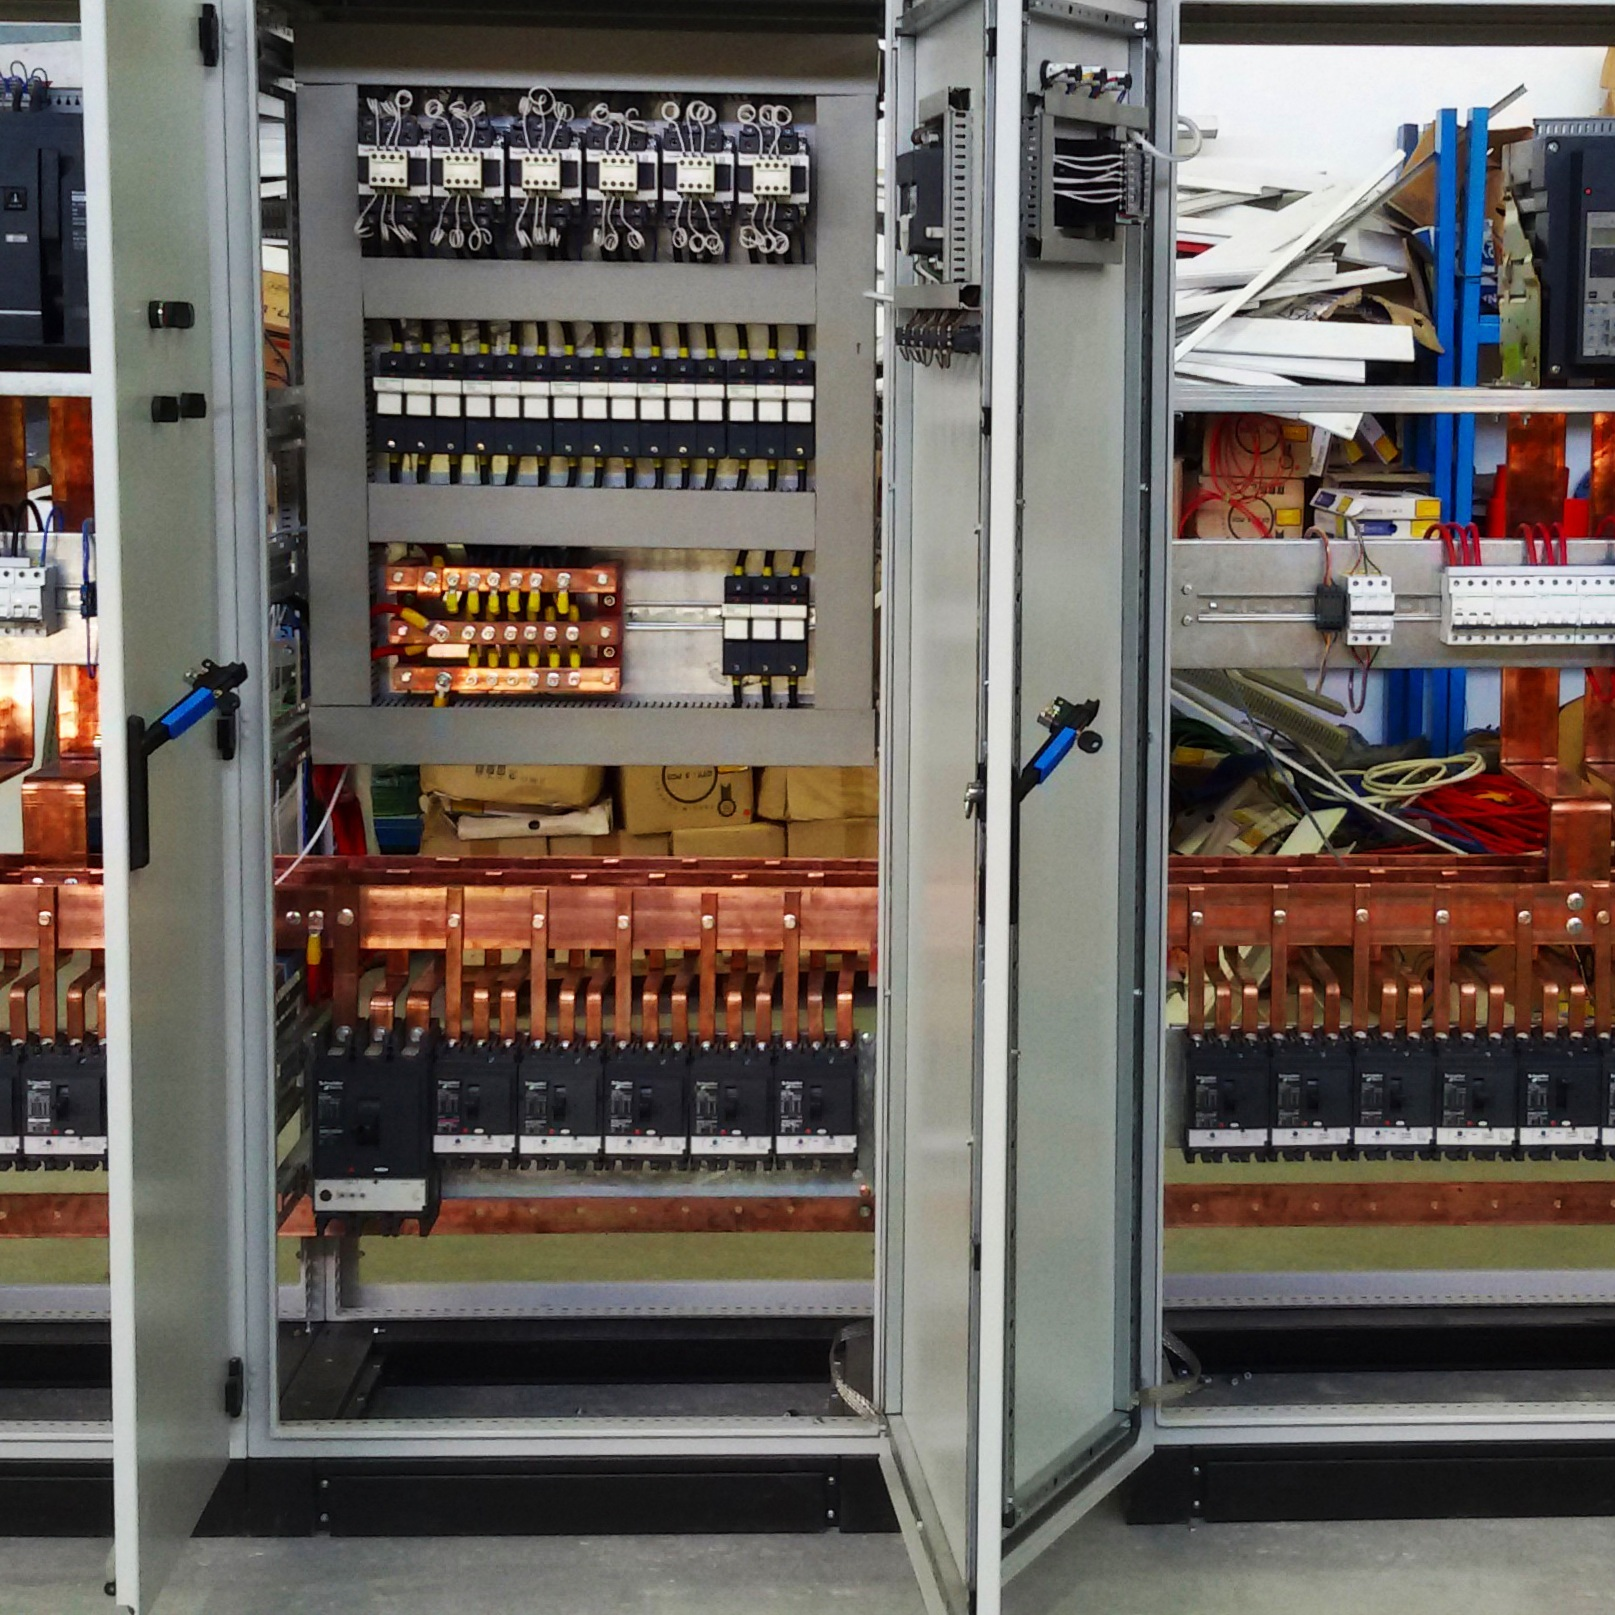 4Electrical-panels-for-Industrial-projects6.jpg